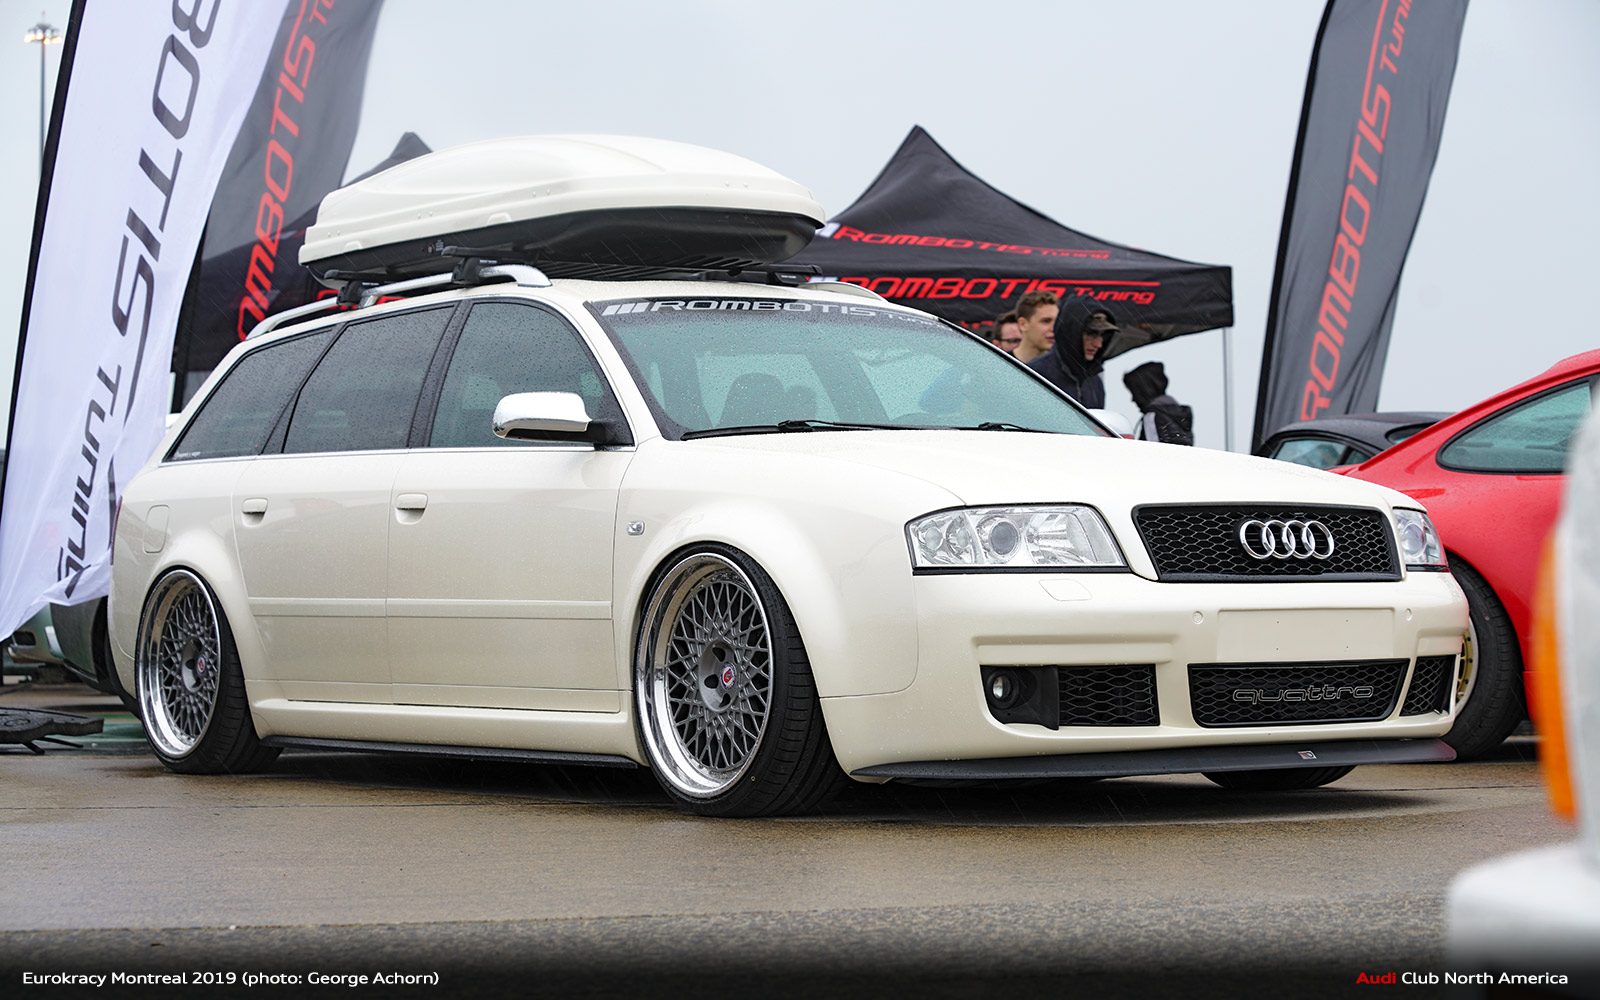 quattro Magazine q4_2019: Event Report - Eurokracy 2019